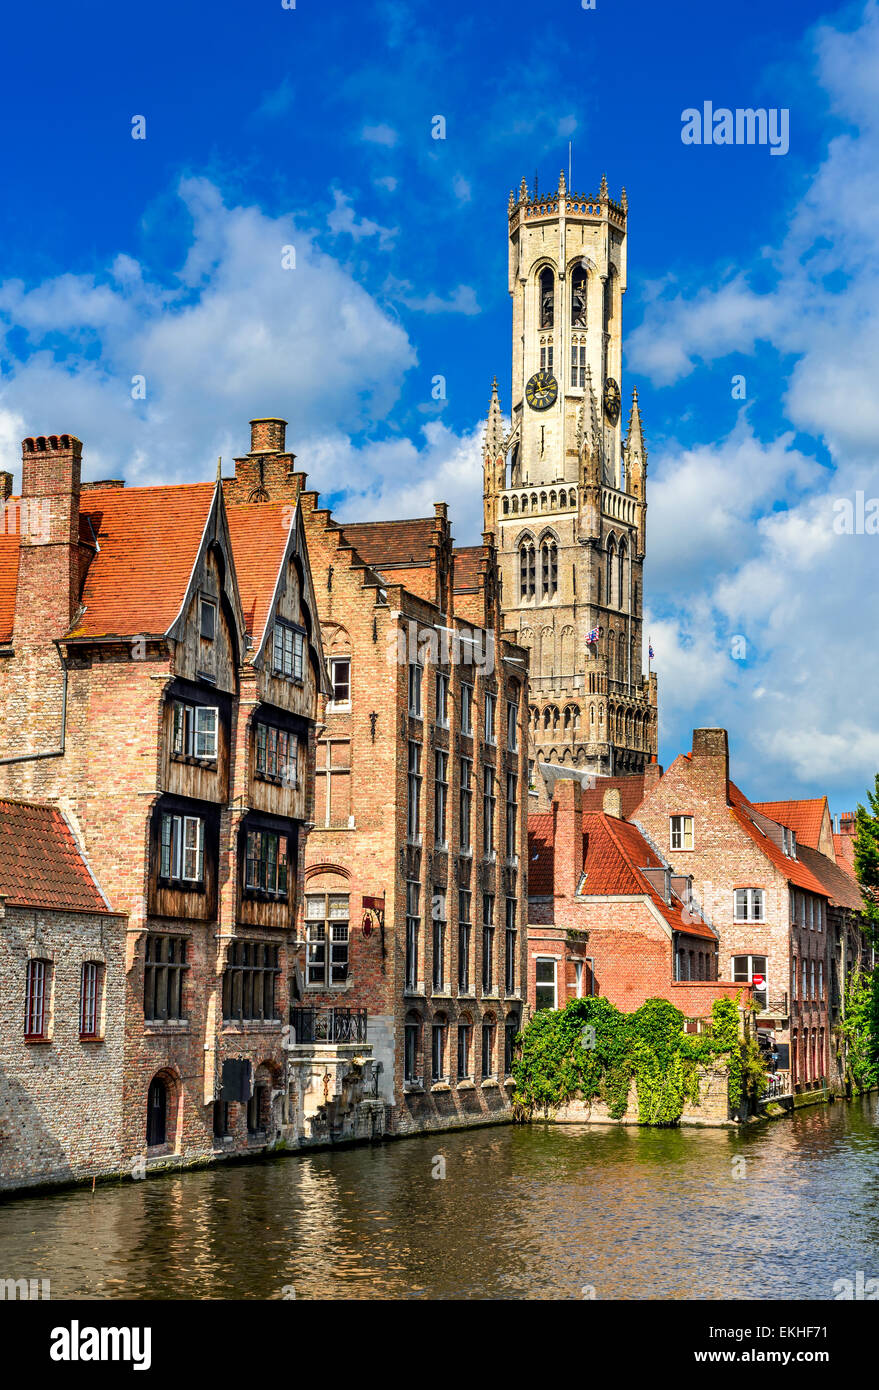 Bruges, Belgium. Image with Belfort (Belfry) tower and Rozenhoedkaai famous place in Brugge. Dijver river canal - Stock Image